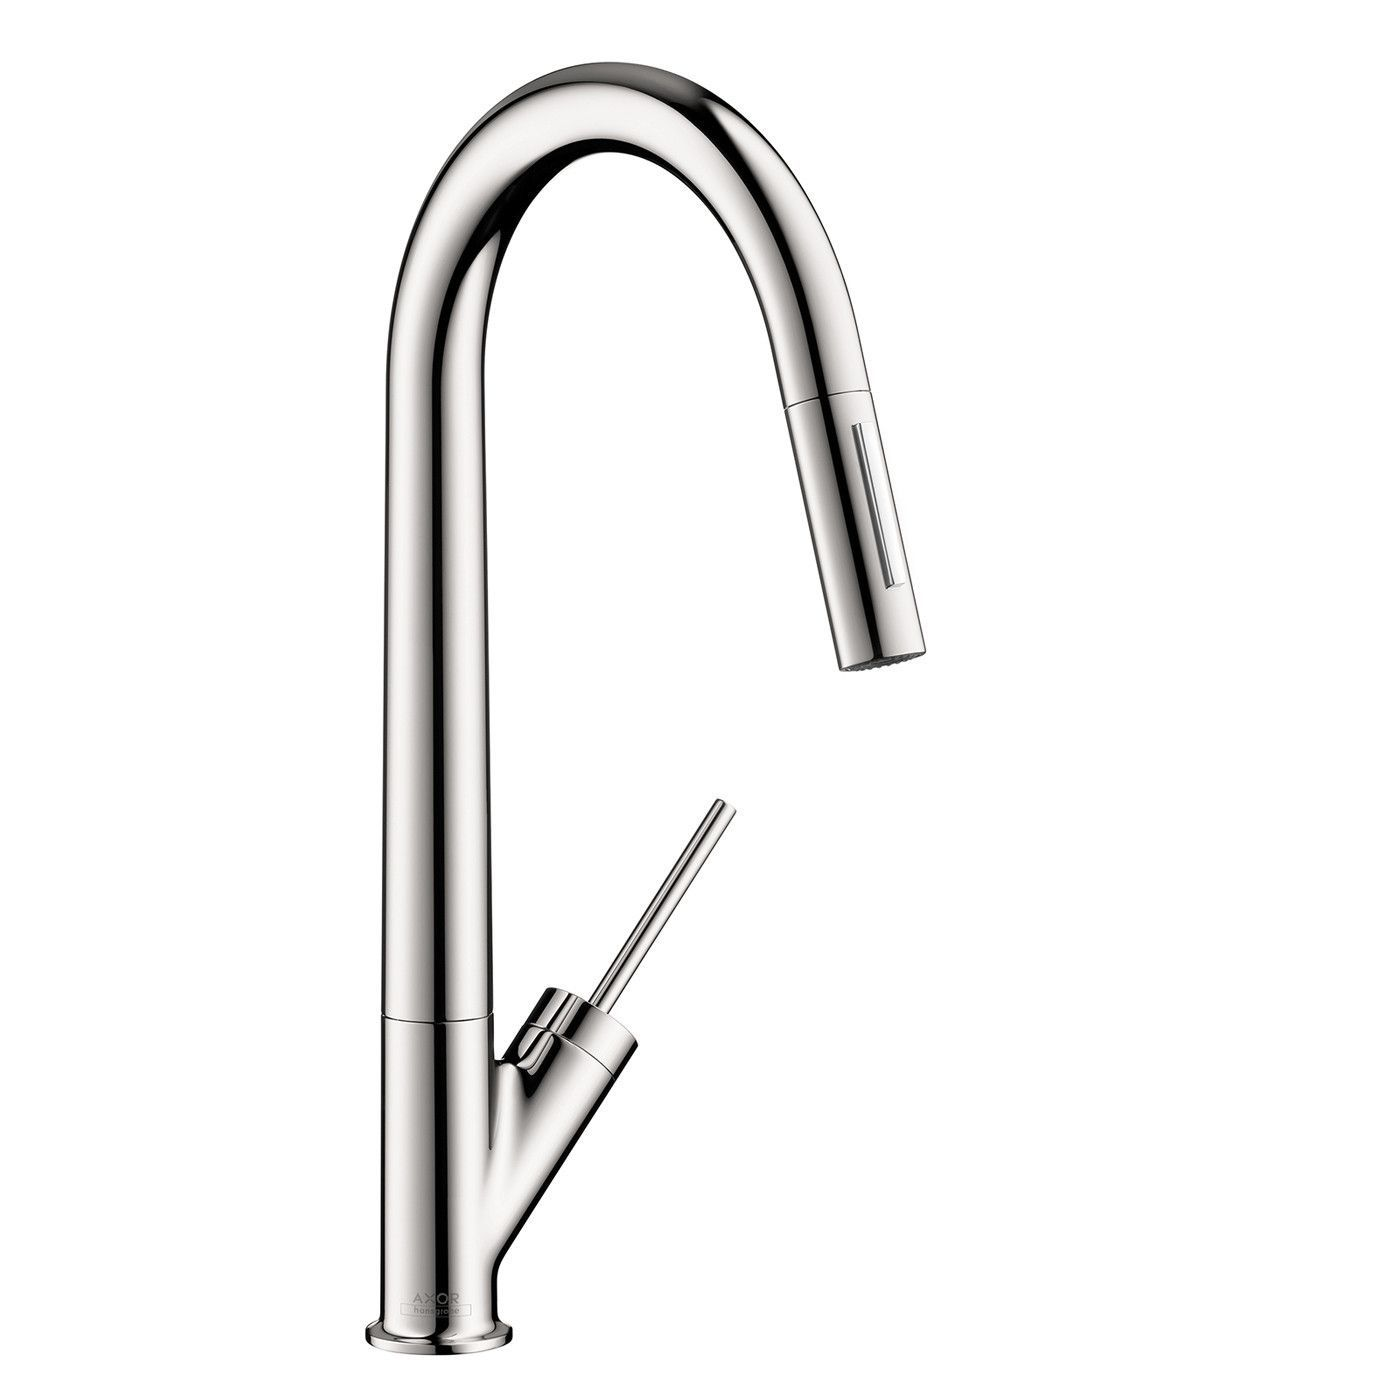 Hansgrohe Axor 10821001 Chrome Starck Pull-Down Kitchen Faucet with ...